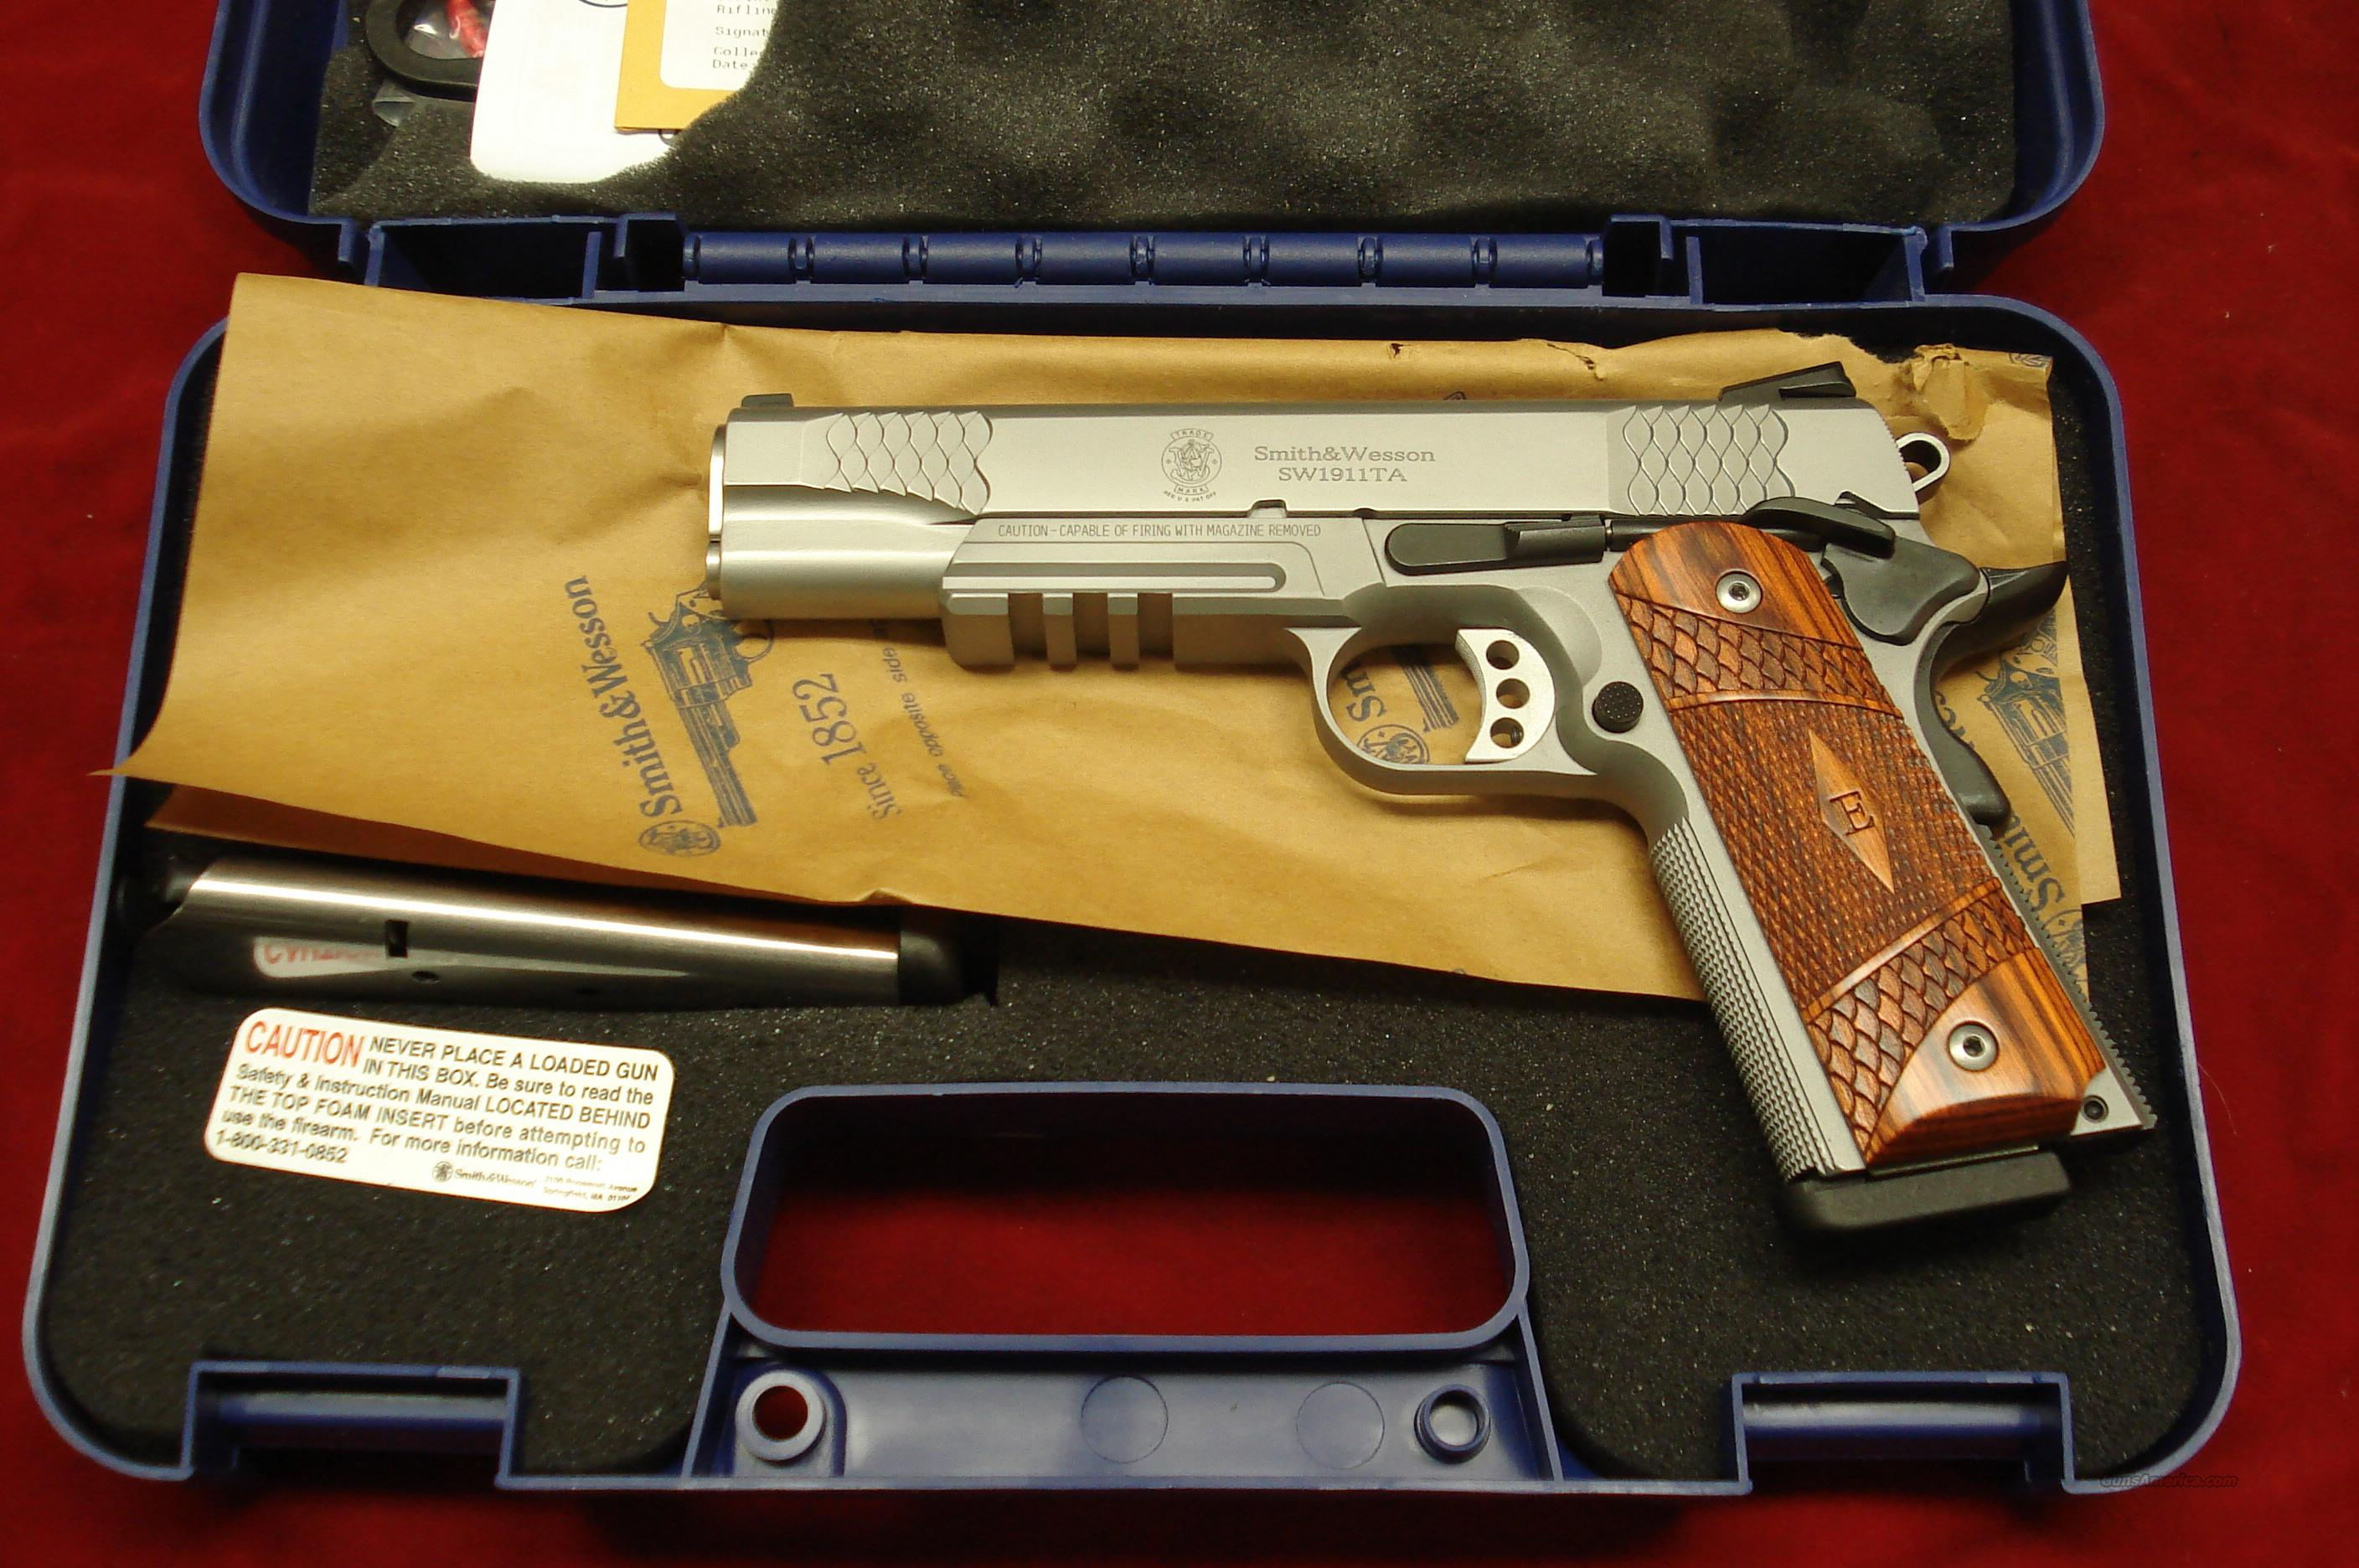 smith and wesson sw1911ta e series stainless for sale rh gunsamerica com Smith and Wesson 5906 Smith and Wesson 5906